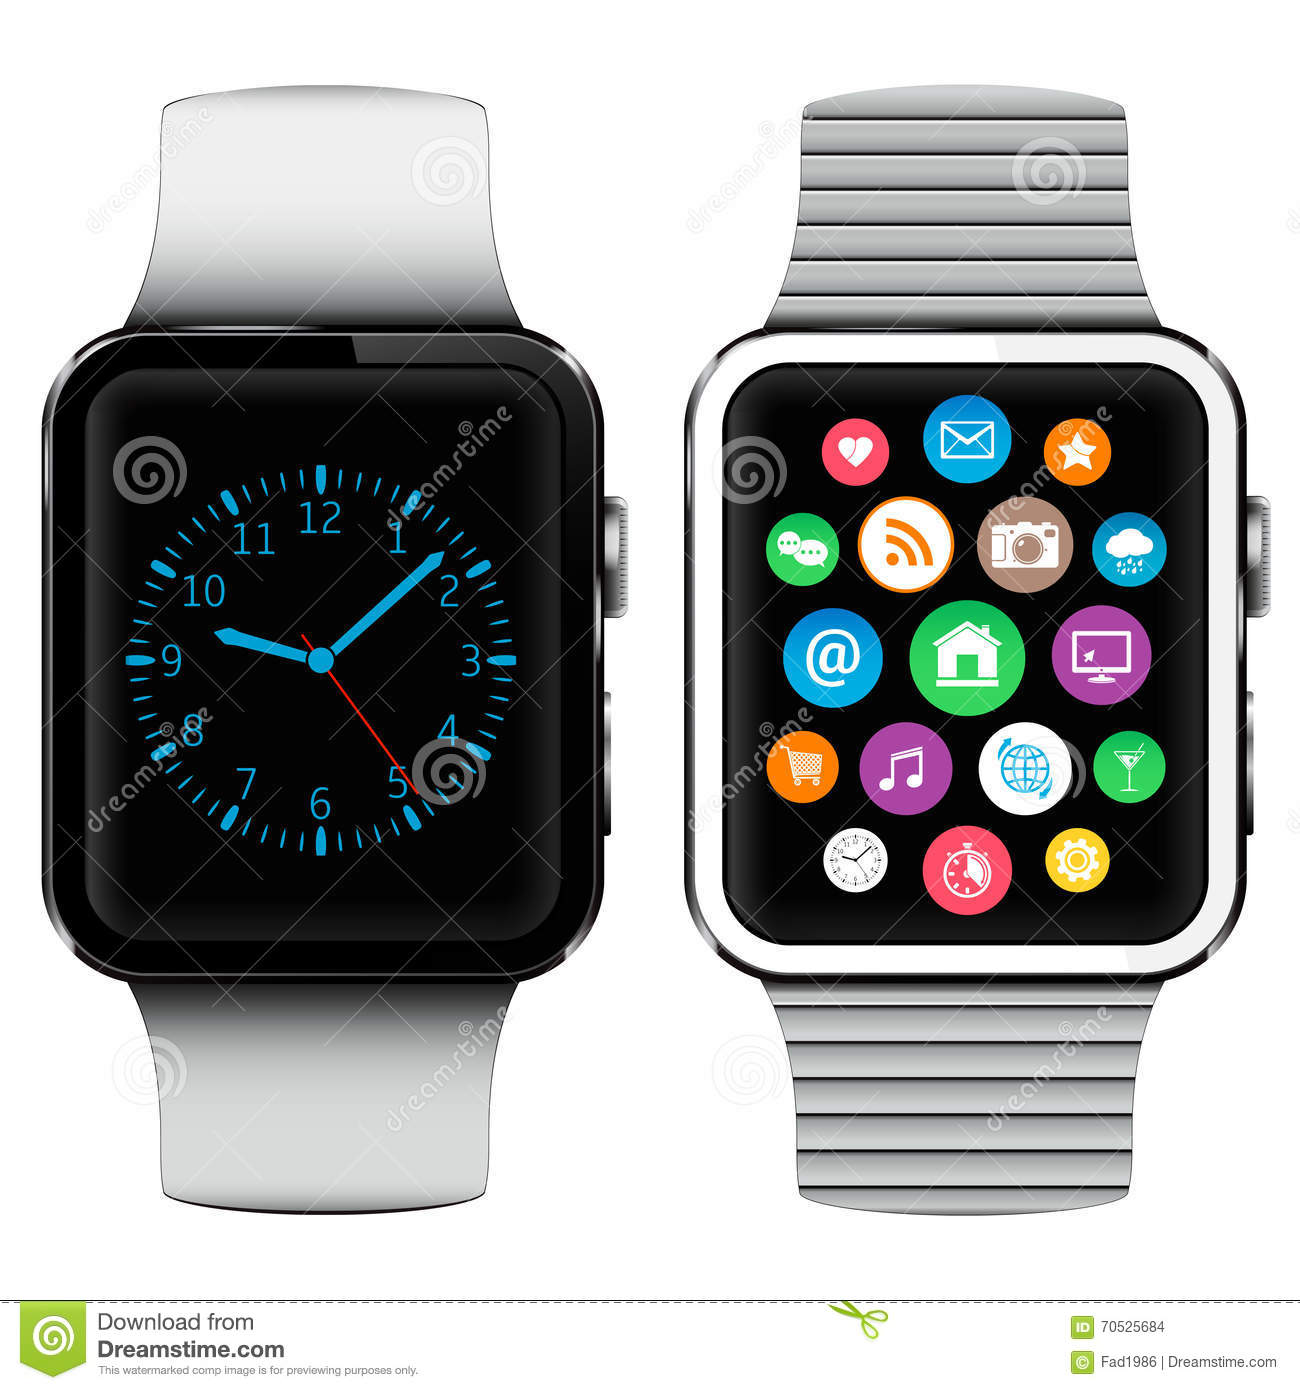 Modern smart watches with applications icons on screen - Relojes de pared grandes modernos ...